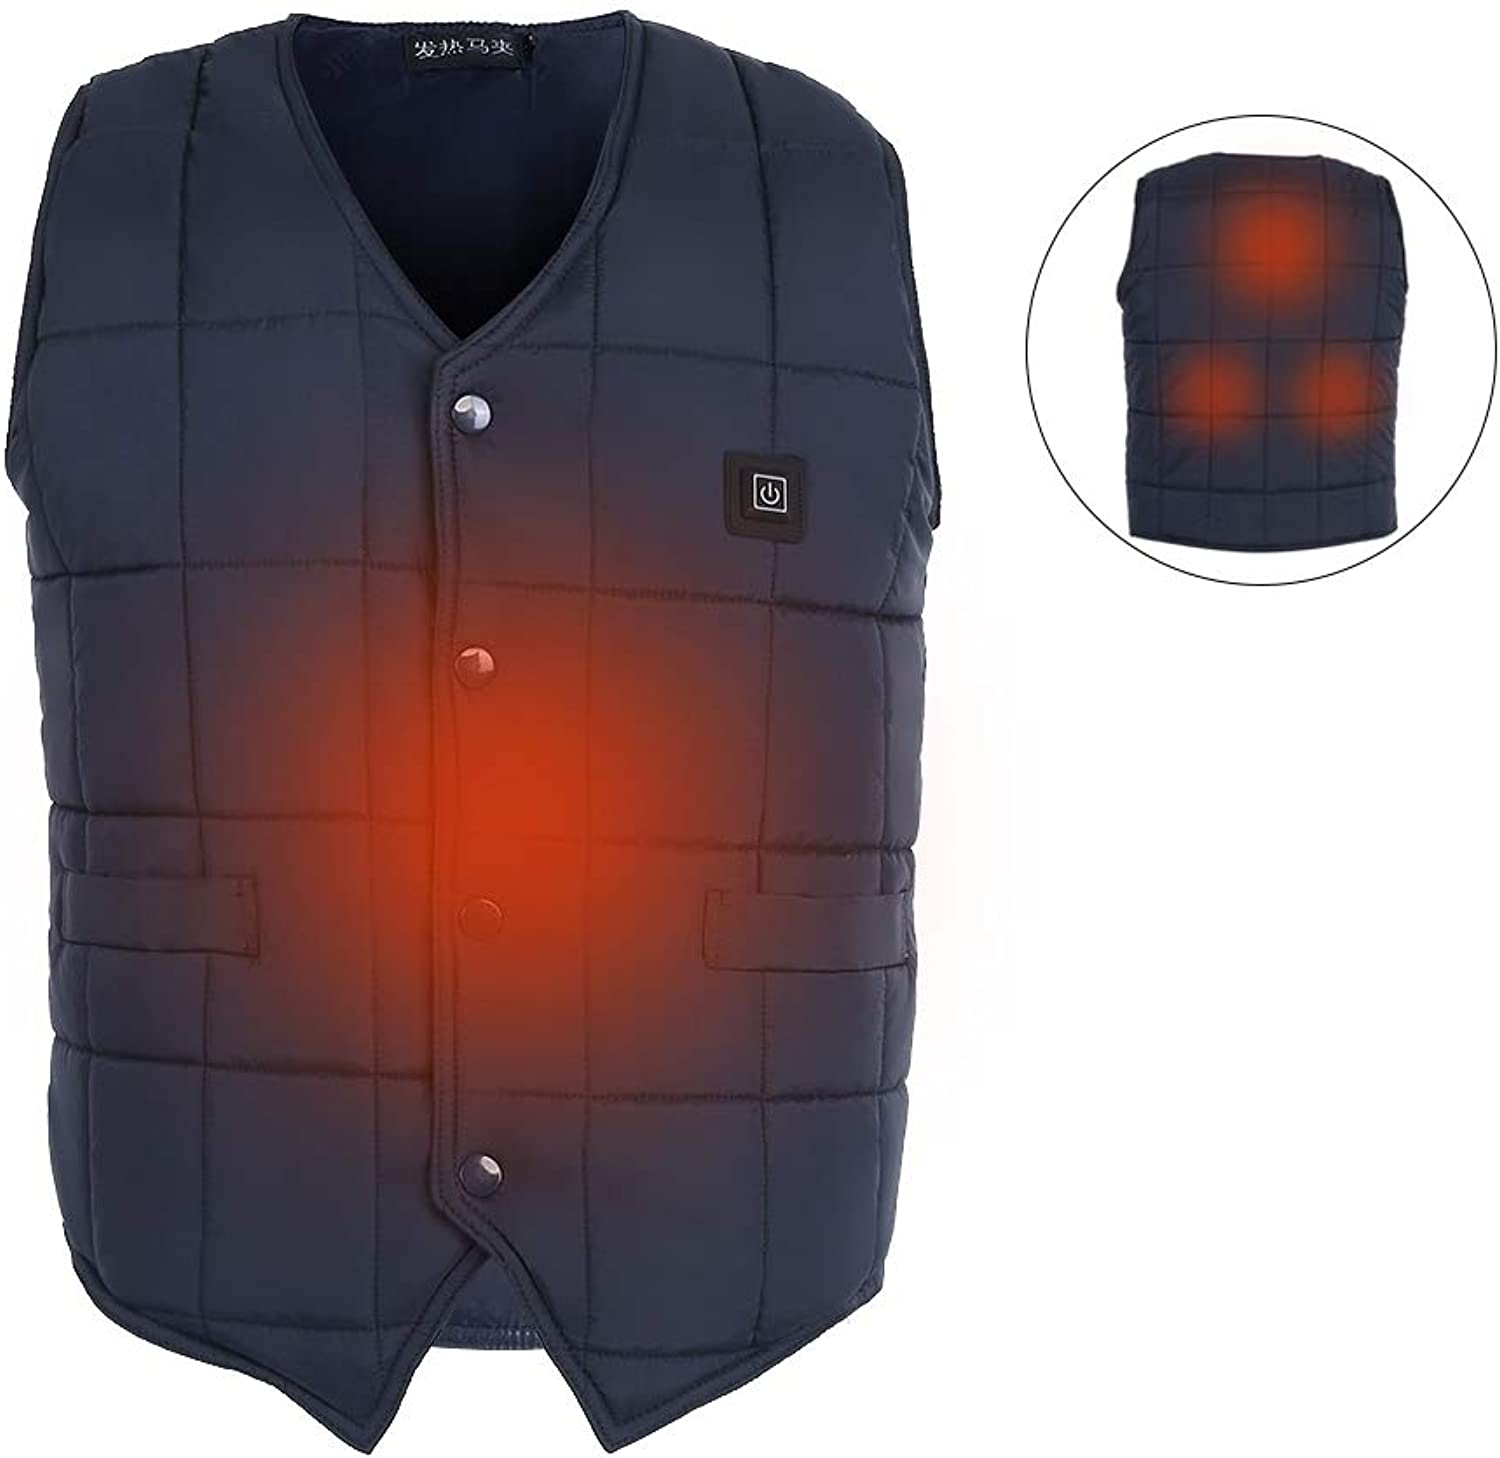 Heated Vest Five Size Electric Warm Vest,USB Infrared Heating Clothing Lightweight Insulated Heated Waistcoat (Black)